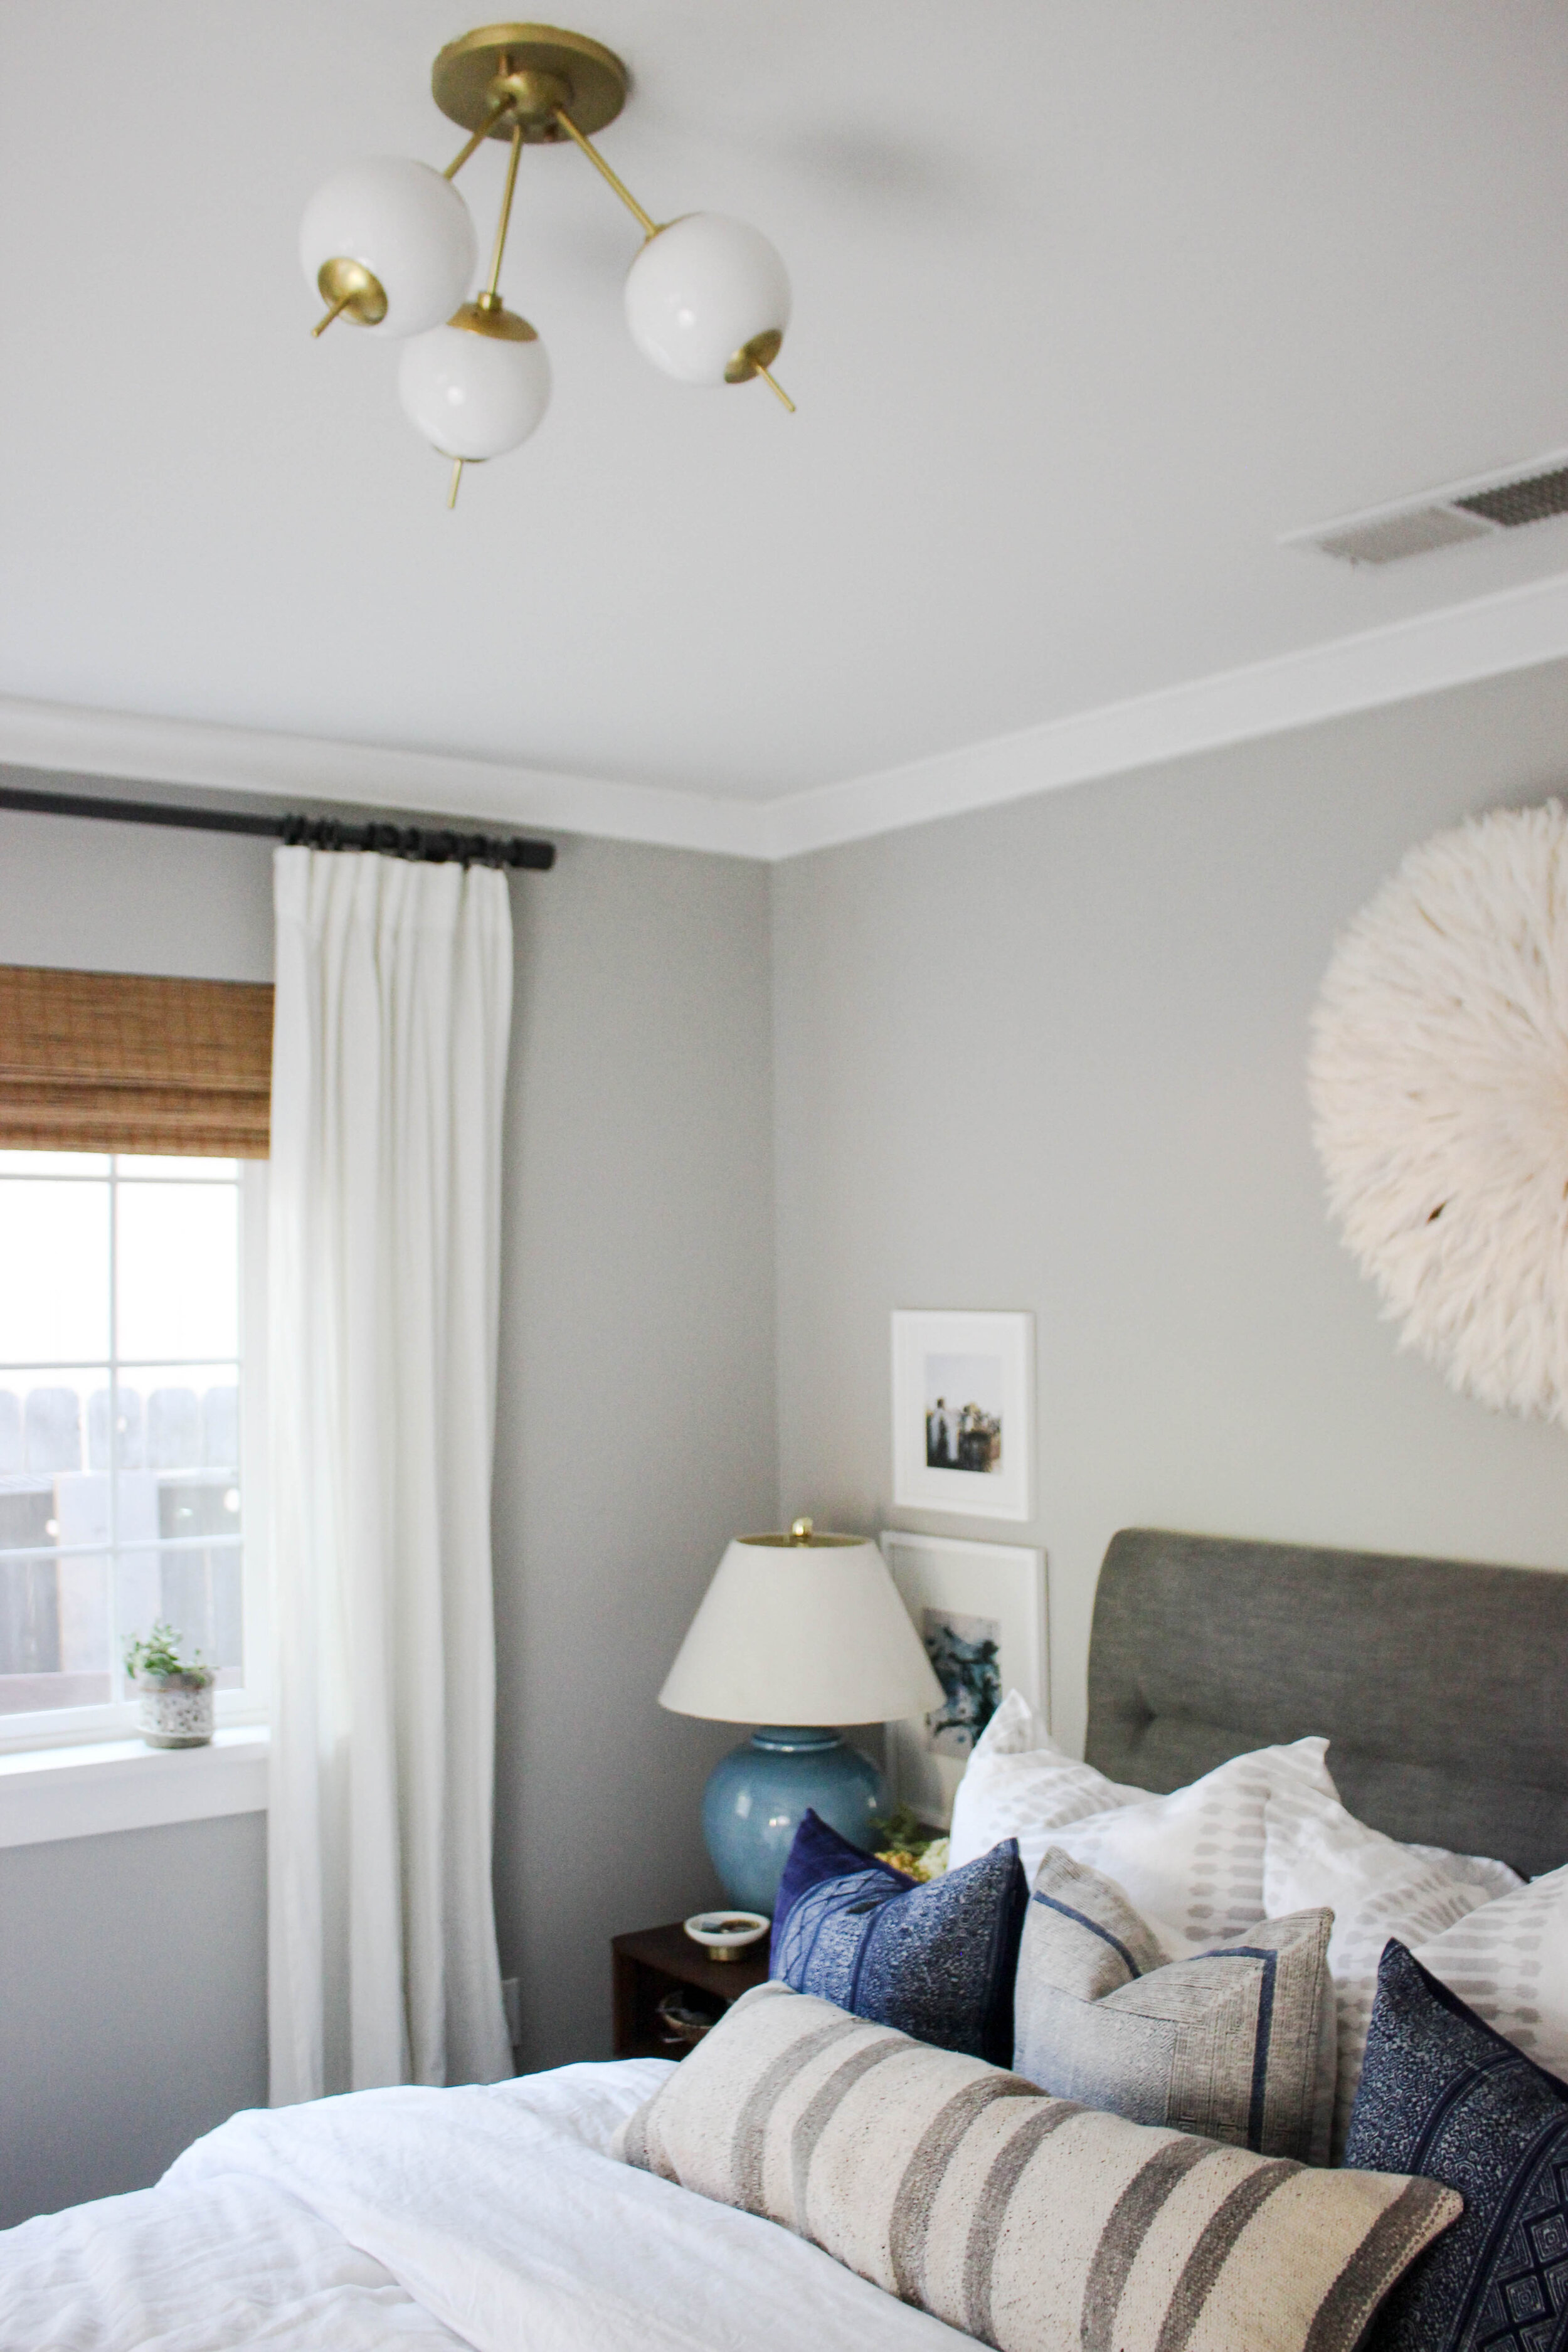 Small Home Style How To Choose Lighting For A Small Bedroom Katrina Blair Interior Design Small Home Style Modern Livingkatrina Blair